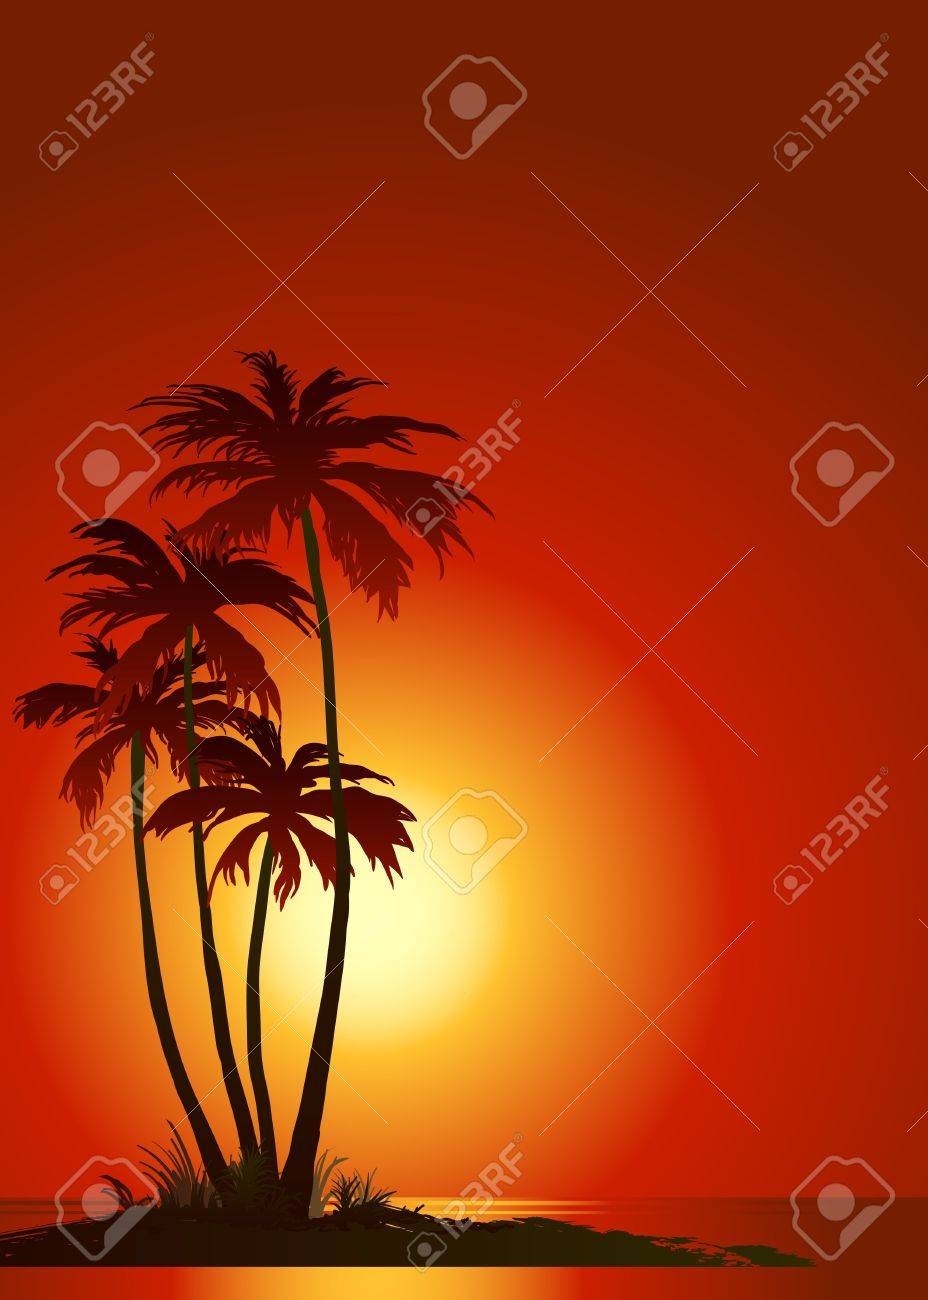 Tropical beach with palm trees - 7085355